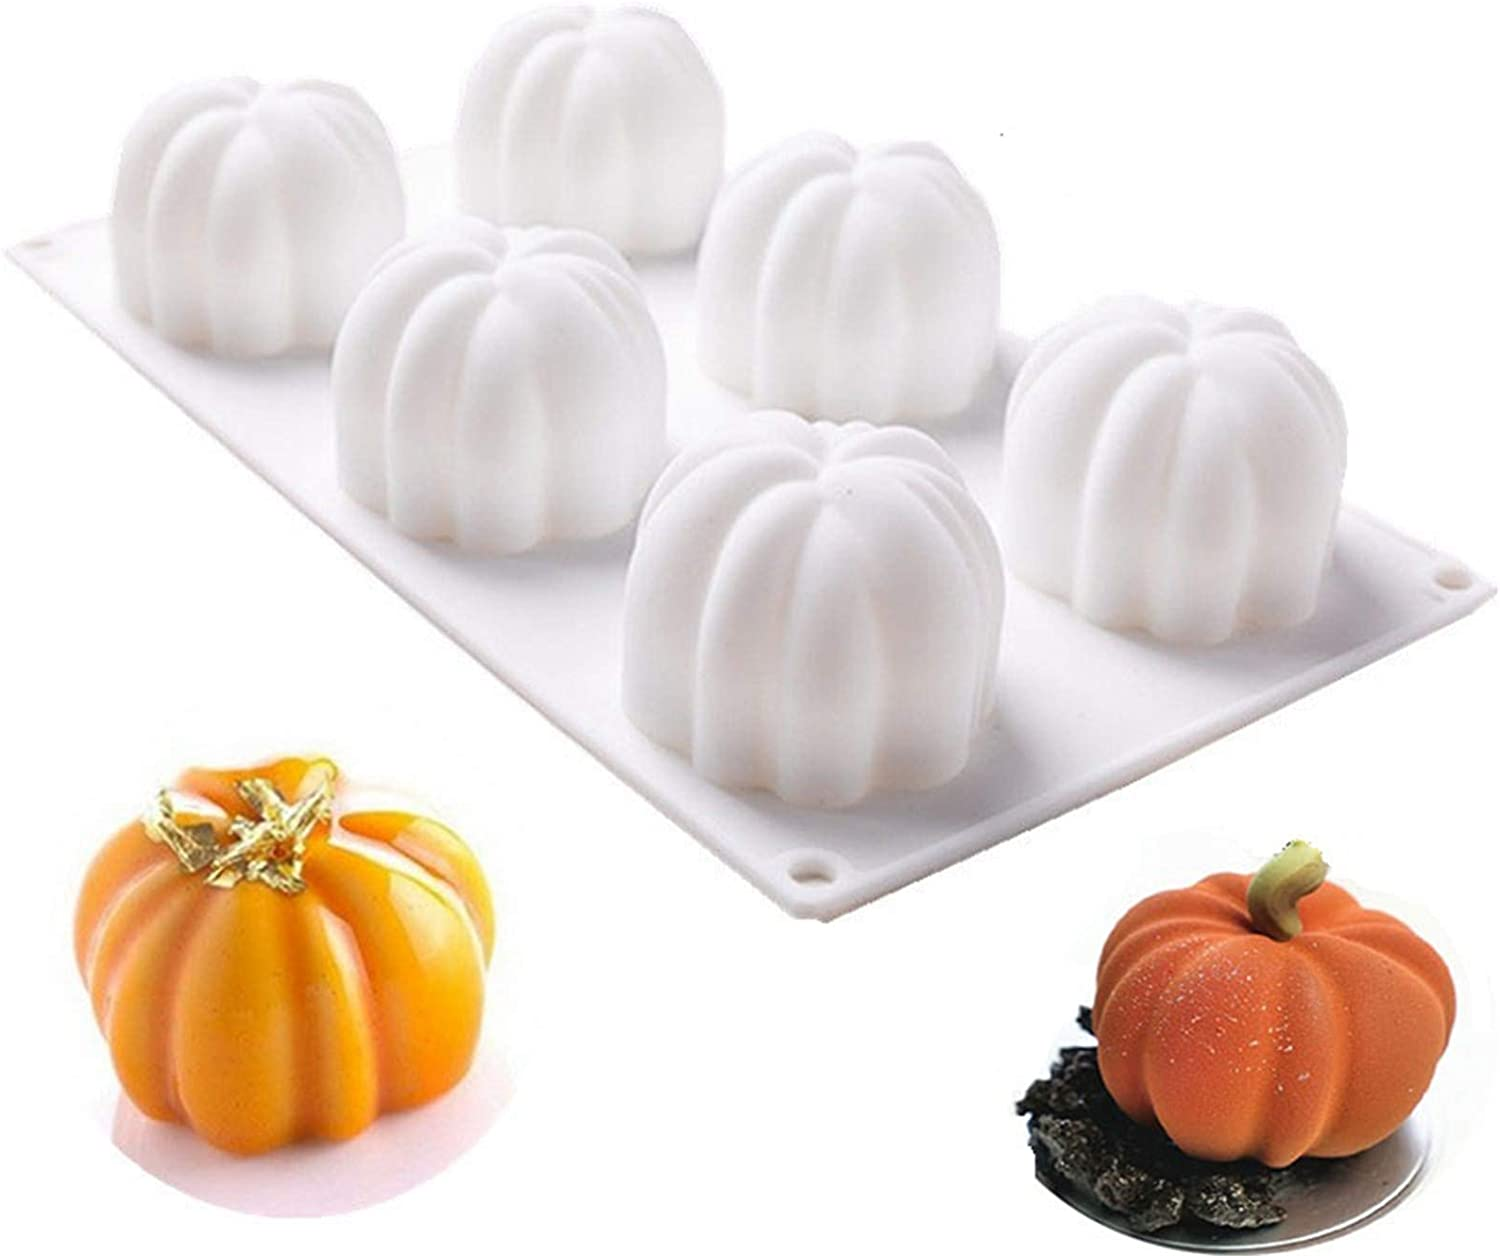 Silicone Cake Molds For Baking - Halloween 3D Pumpkin Silicone Mold 6 Cavities Cupcake Baking Pan Mousse Mold Tray For Candy Chocolate Brownie,Cheesecake Dessert Handmade DIY Soap Making